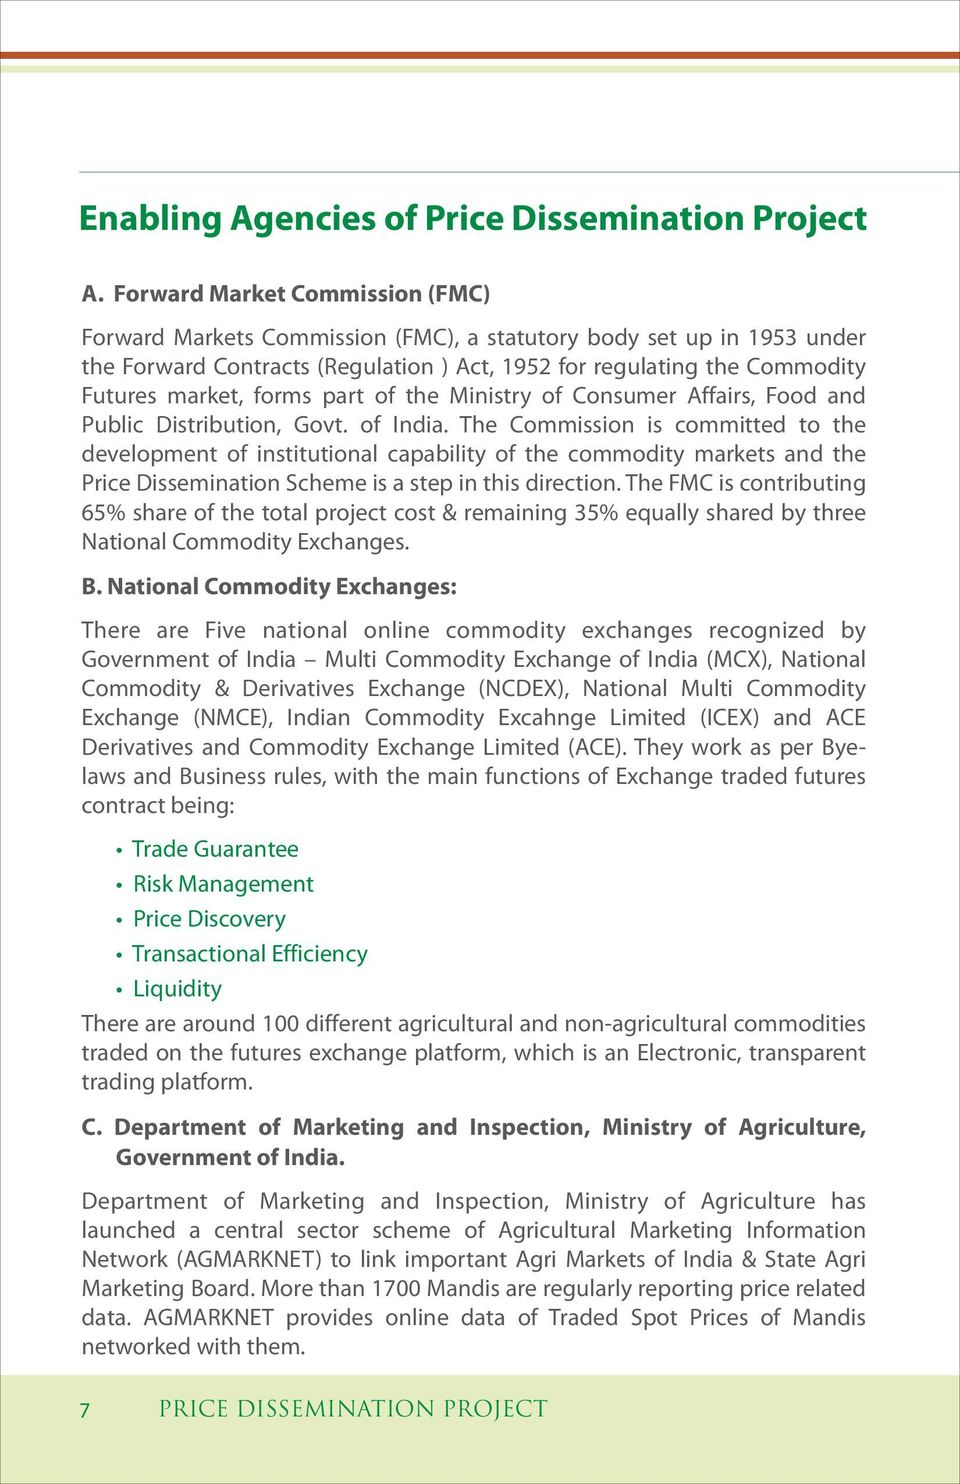 forms part of the Ministry of Consumer Affairs, Food and Public Distribution, Govt. of India.